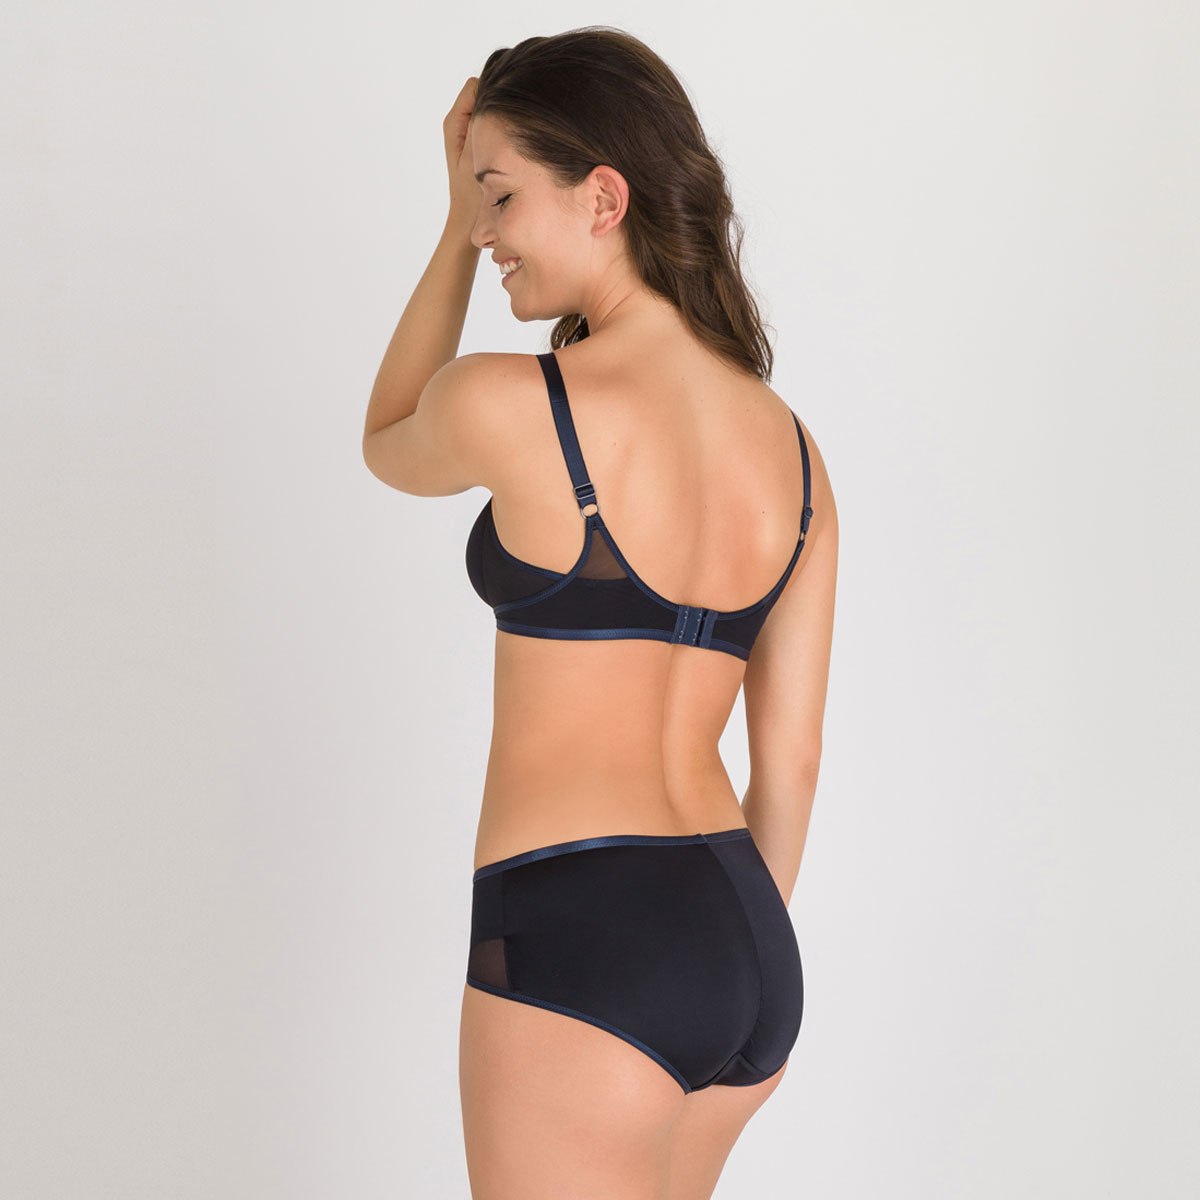 Non-wired Bra in Black - Ideal Beauty, , PLAYTEX